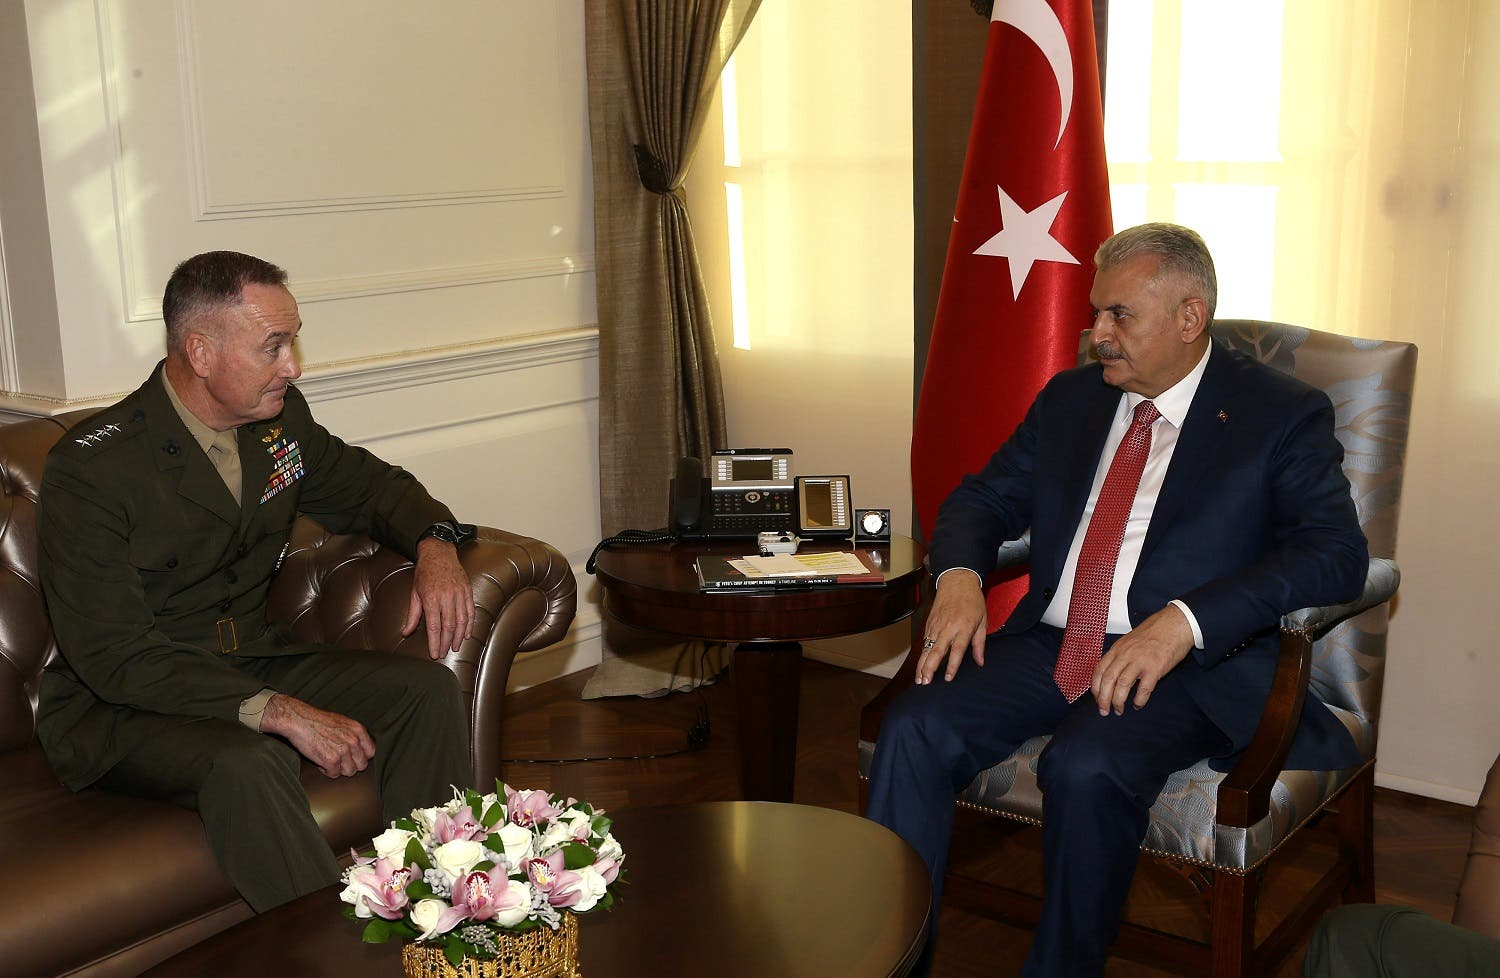 Turkish Prime Minister Yildirim meets with U.S. Joint Chiefs of Staff General Dunford in Ankara. (Reuters)